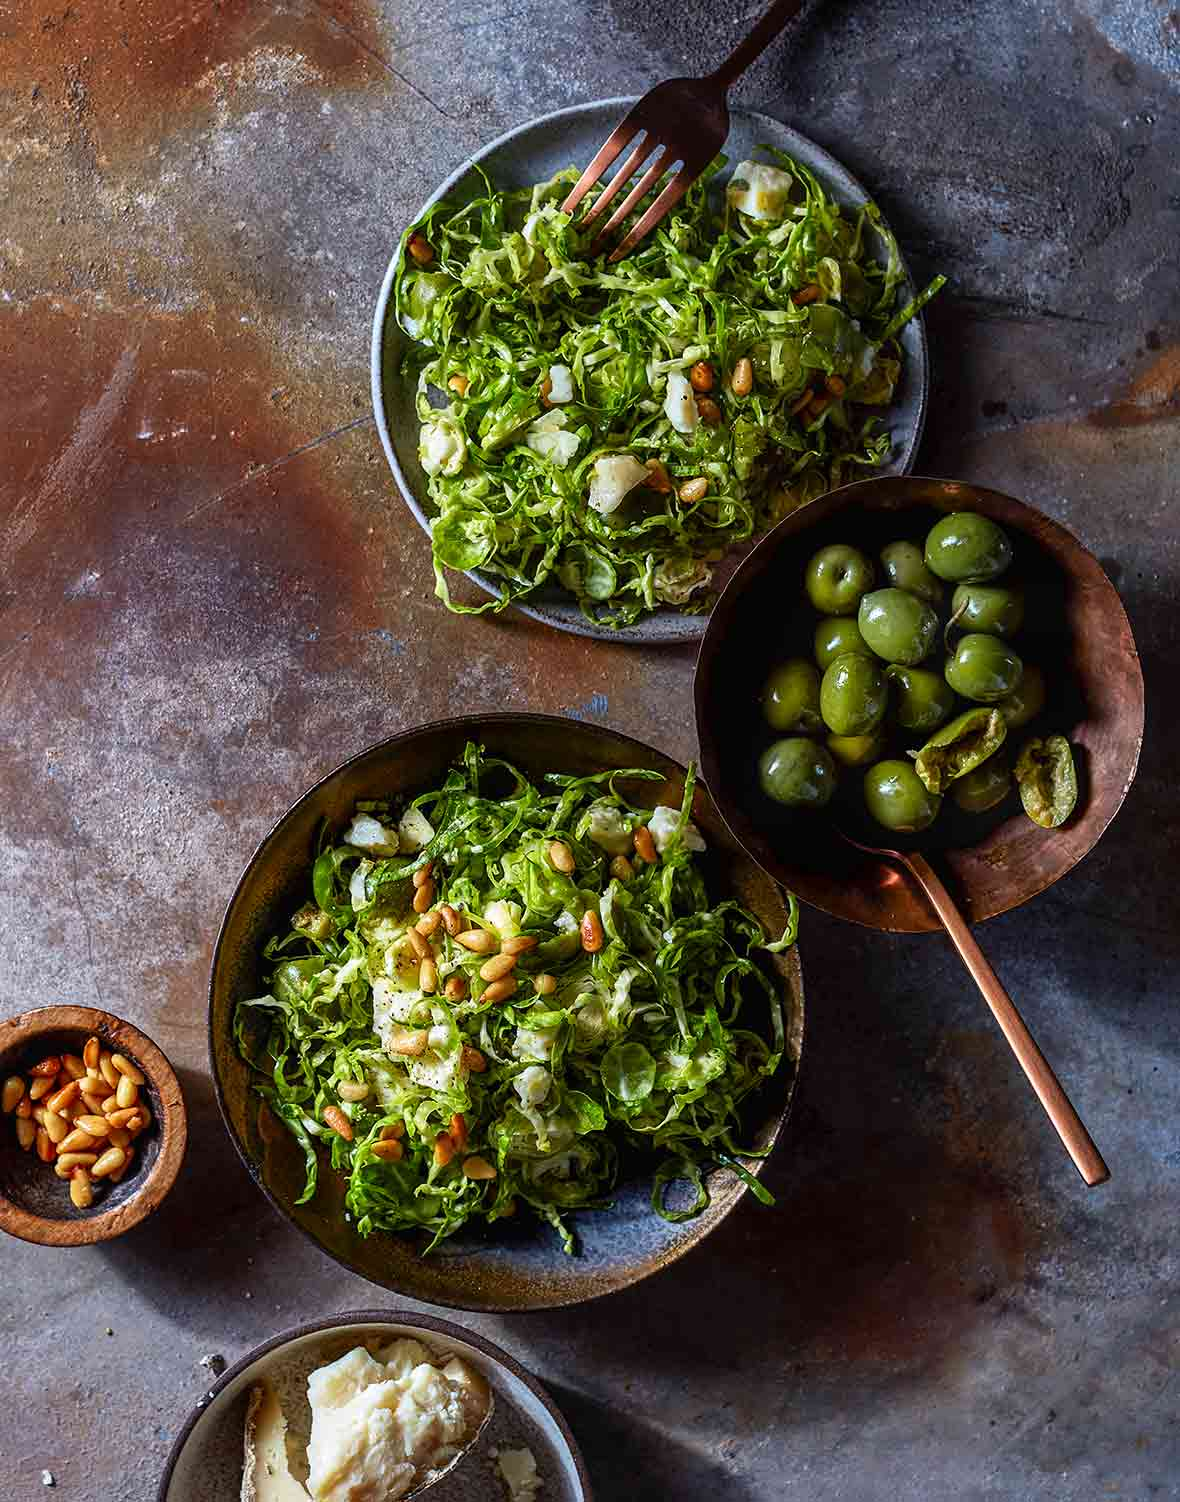 Two plates of shredded, shaved Brussel sprouts, topped with toasted pine nuts, green olives, bread, and more pine nuts nearby